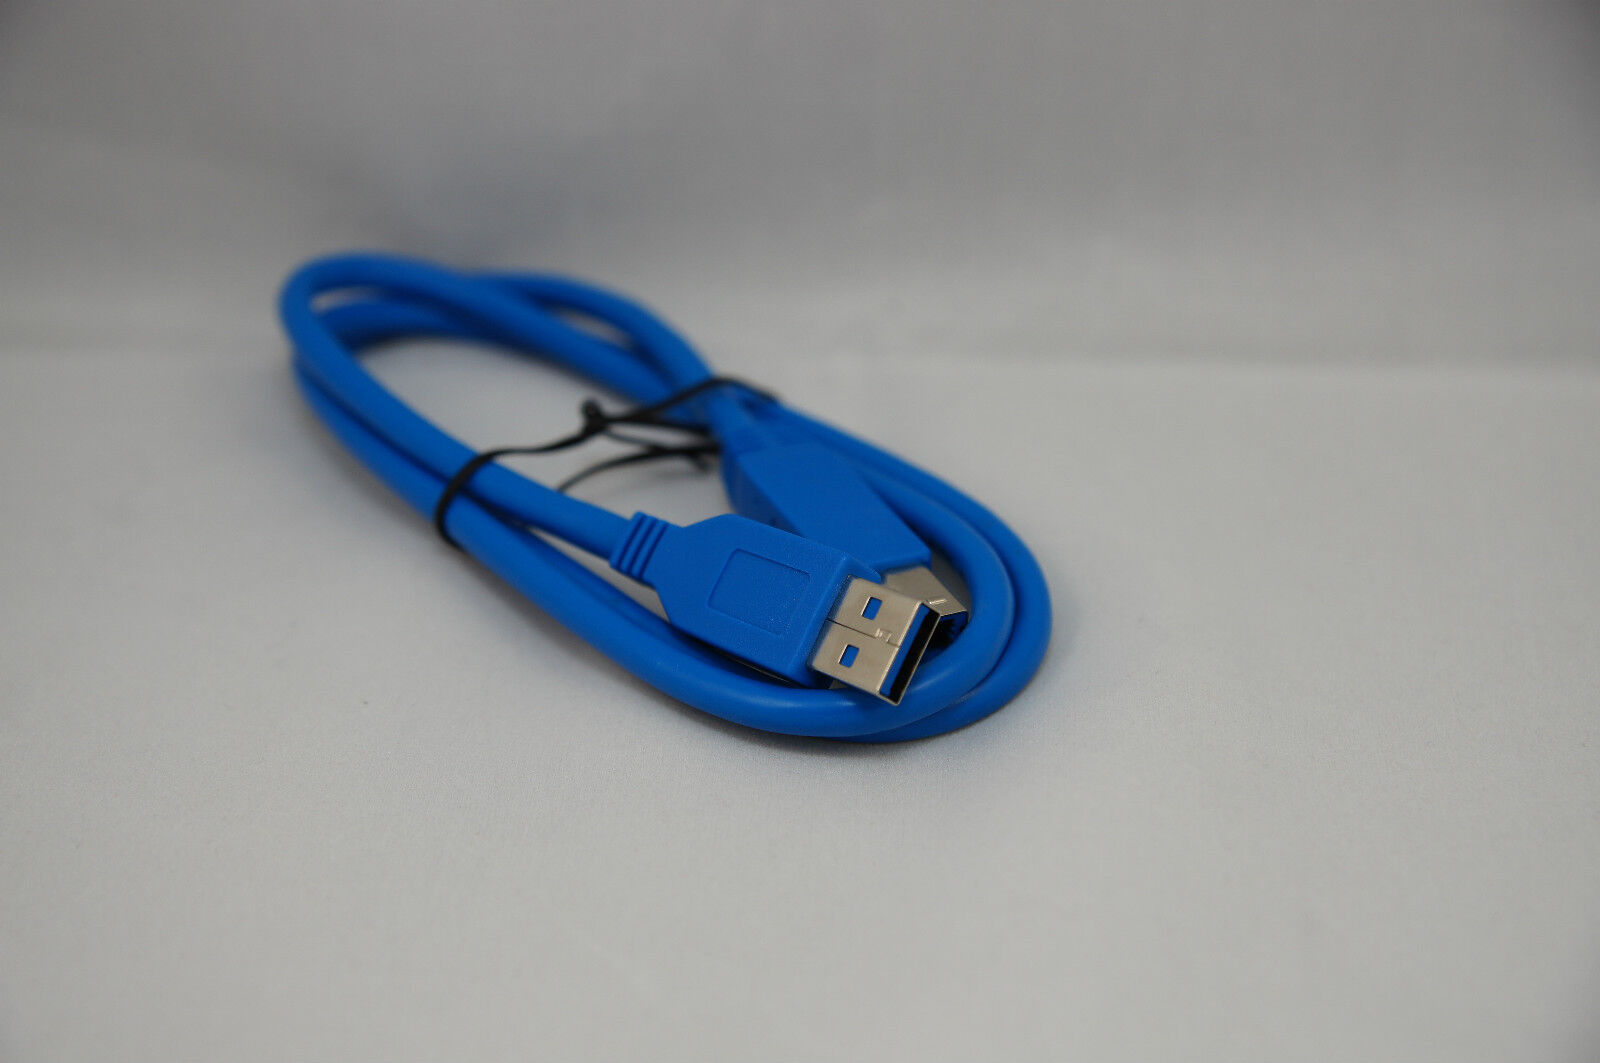 SuperSpeed USB 3.0 A Male to B Male (Blue) 3 Foot Blue High quality